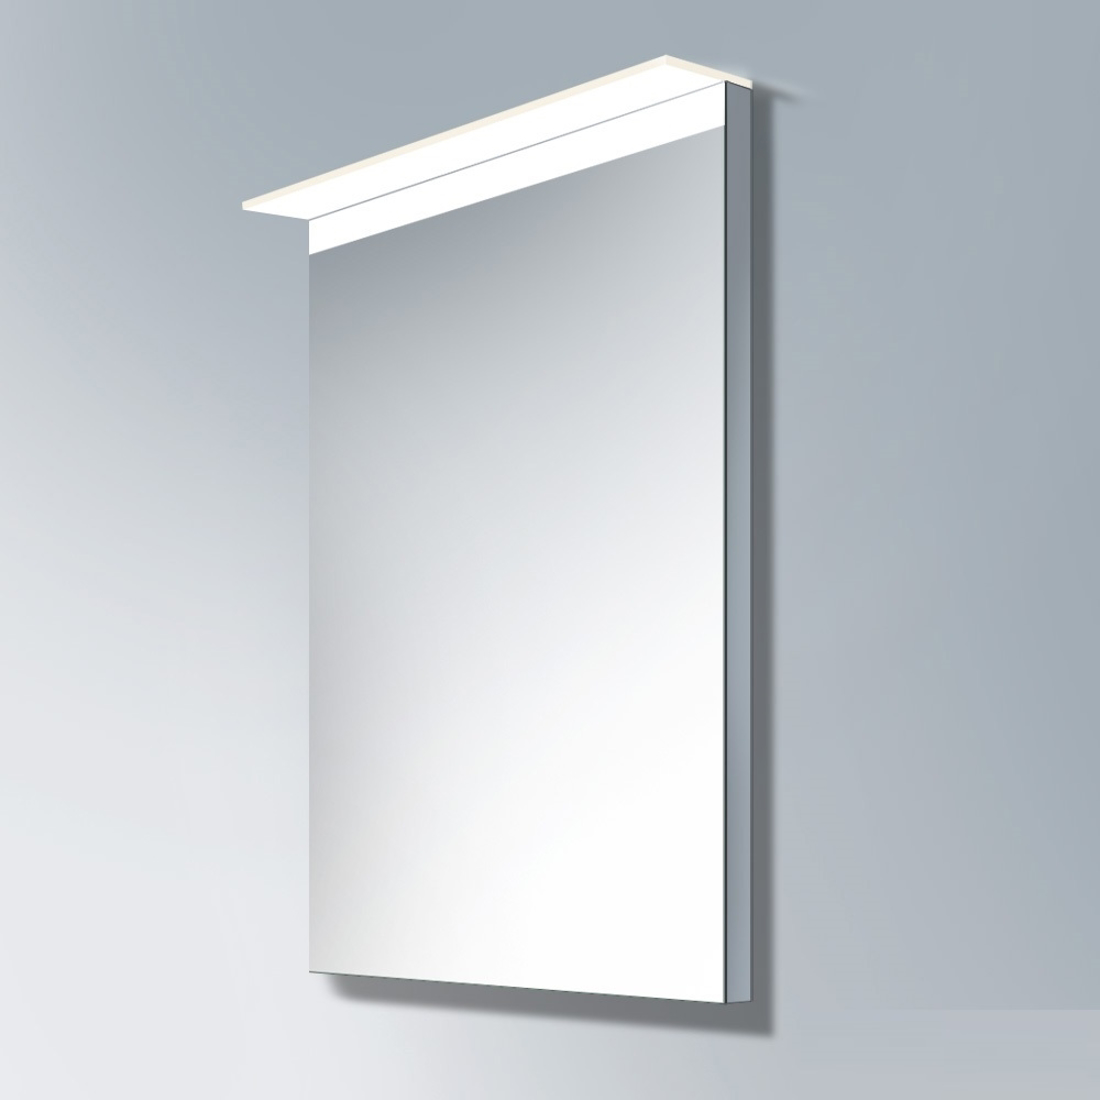 Picture of Delos 60 Mirror with lighting